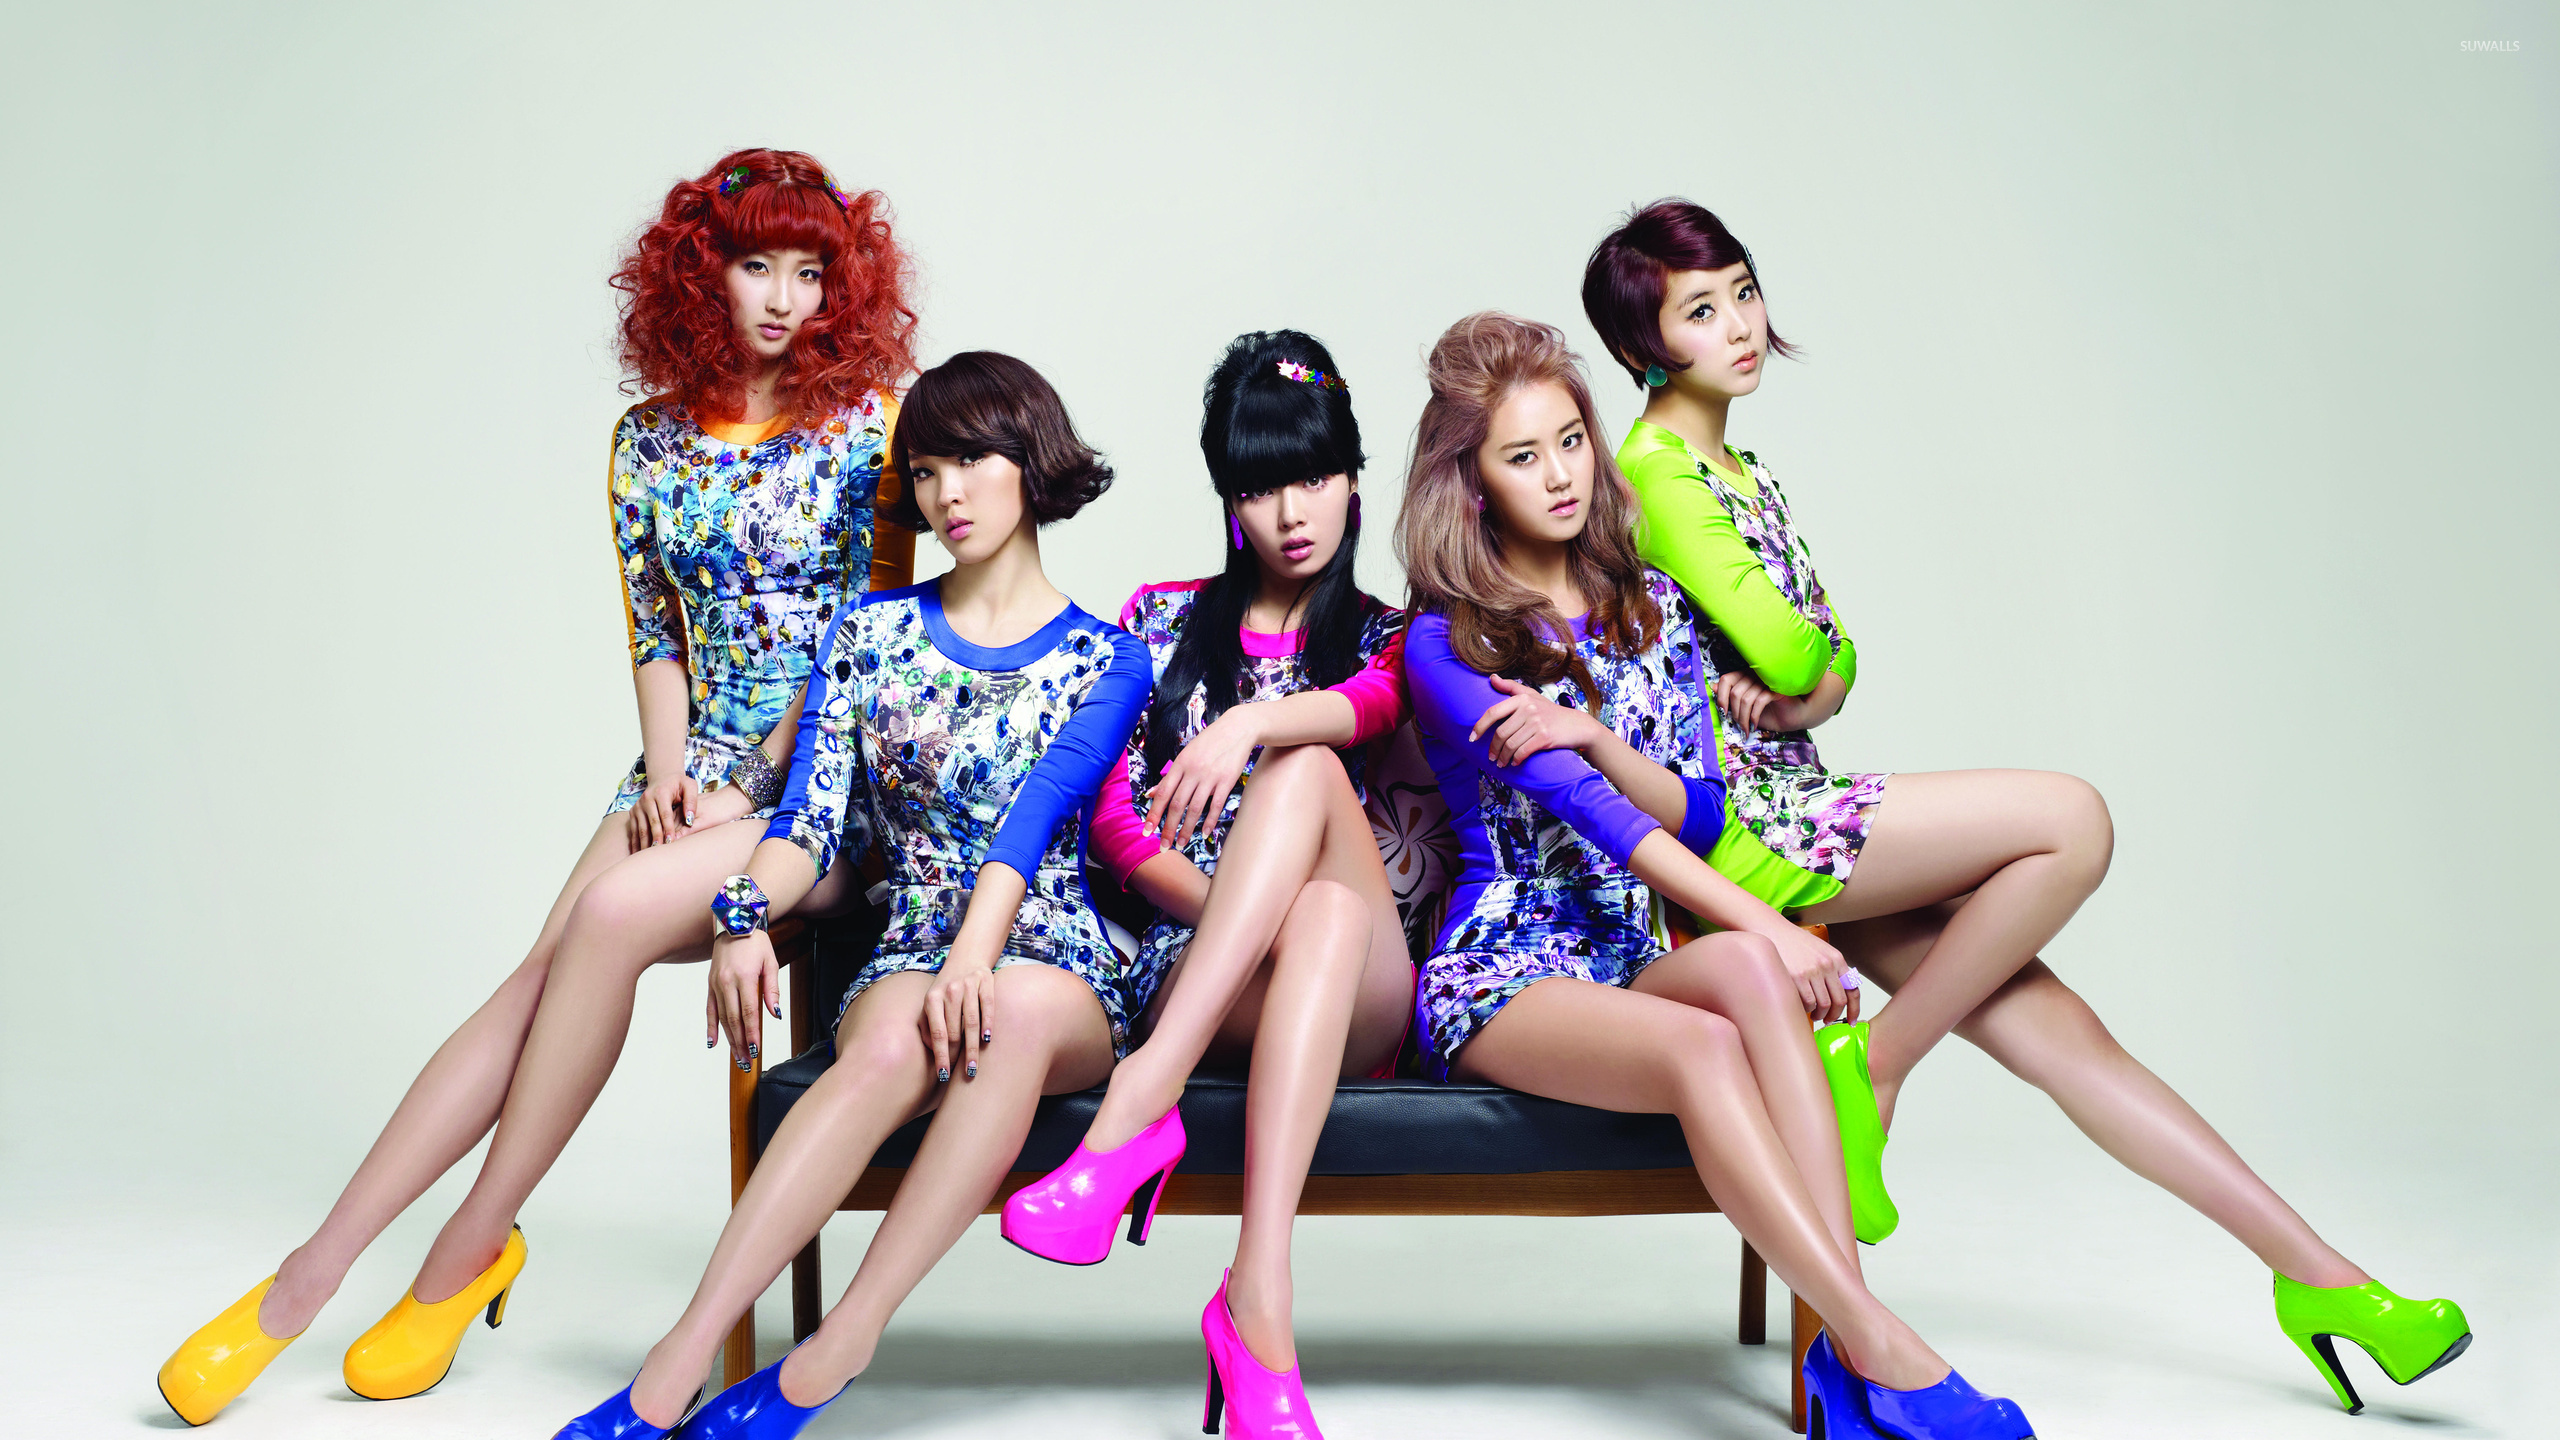 4 minute ga yoon dating sim 4